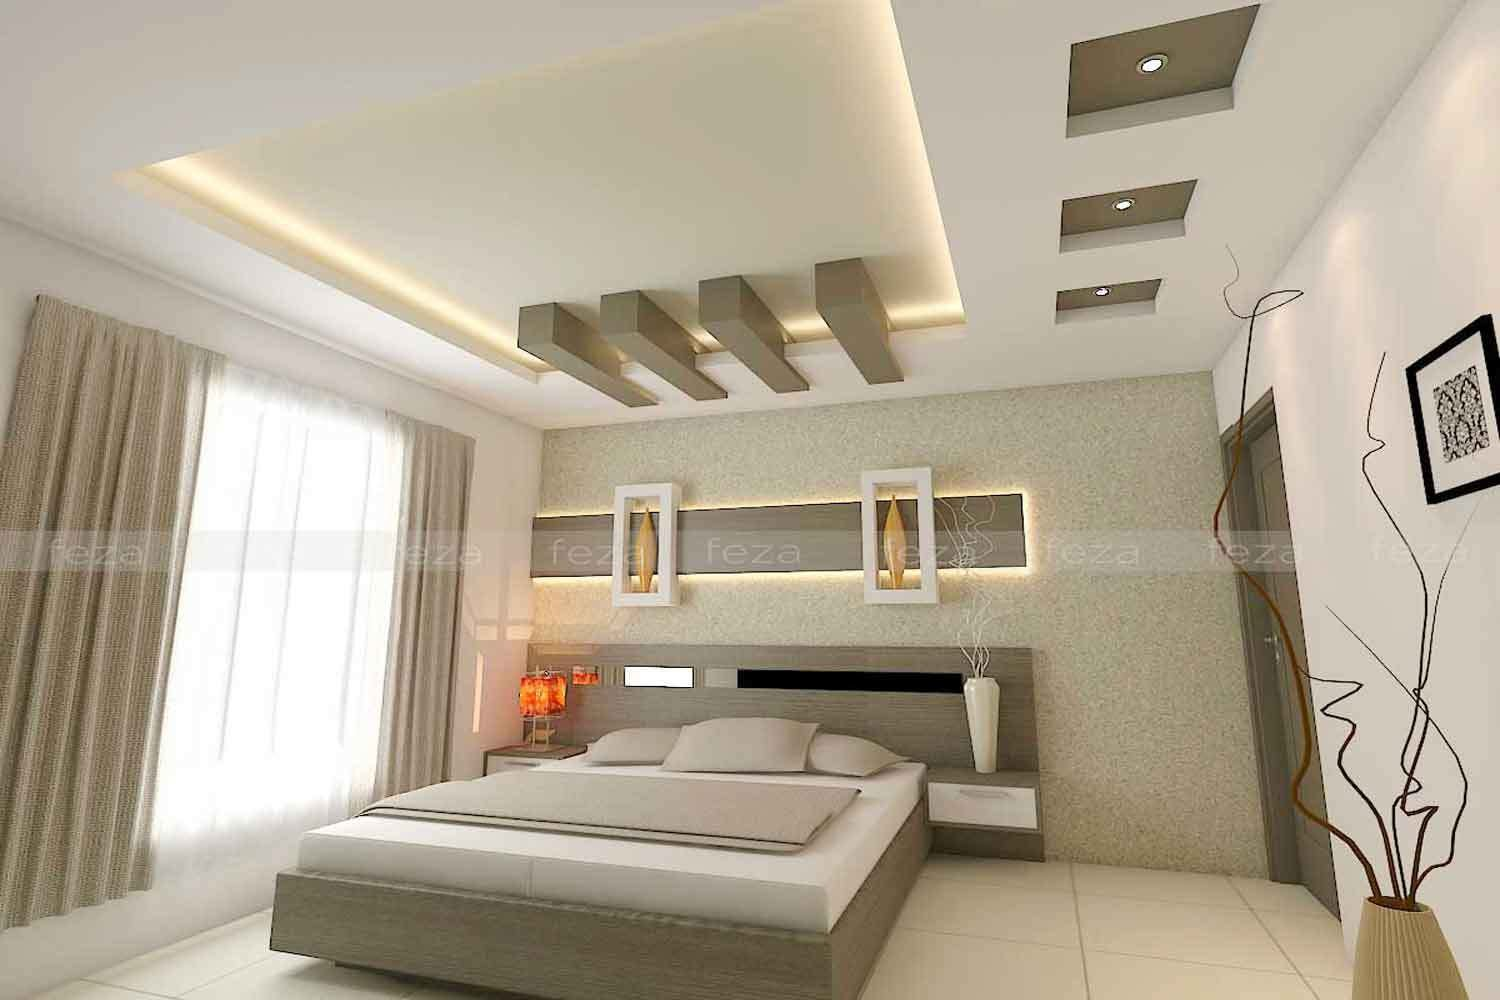 Best Feza Interiors Architects In Palarivattom Ernakulam Ernakulam Interior Design Infomagic With Pictures